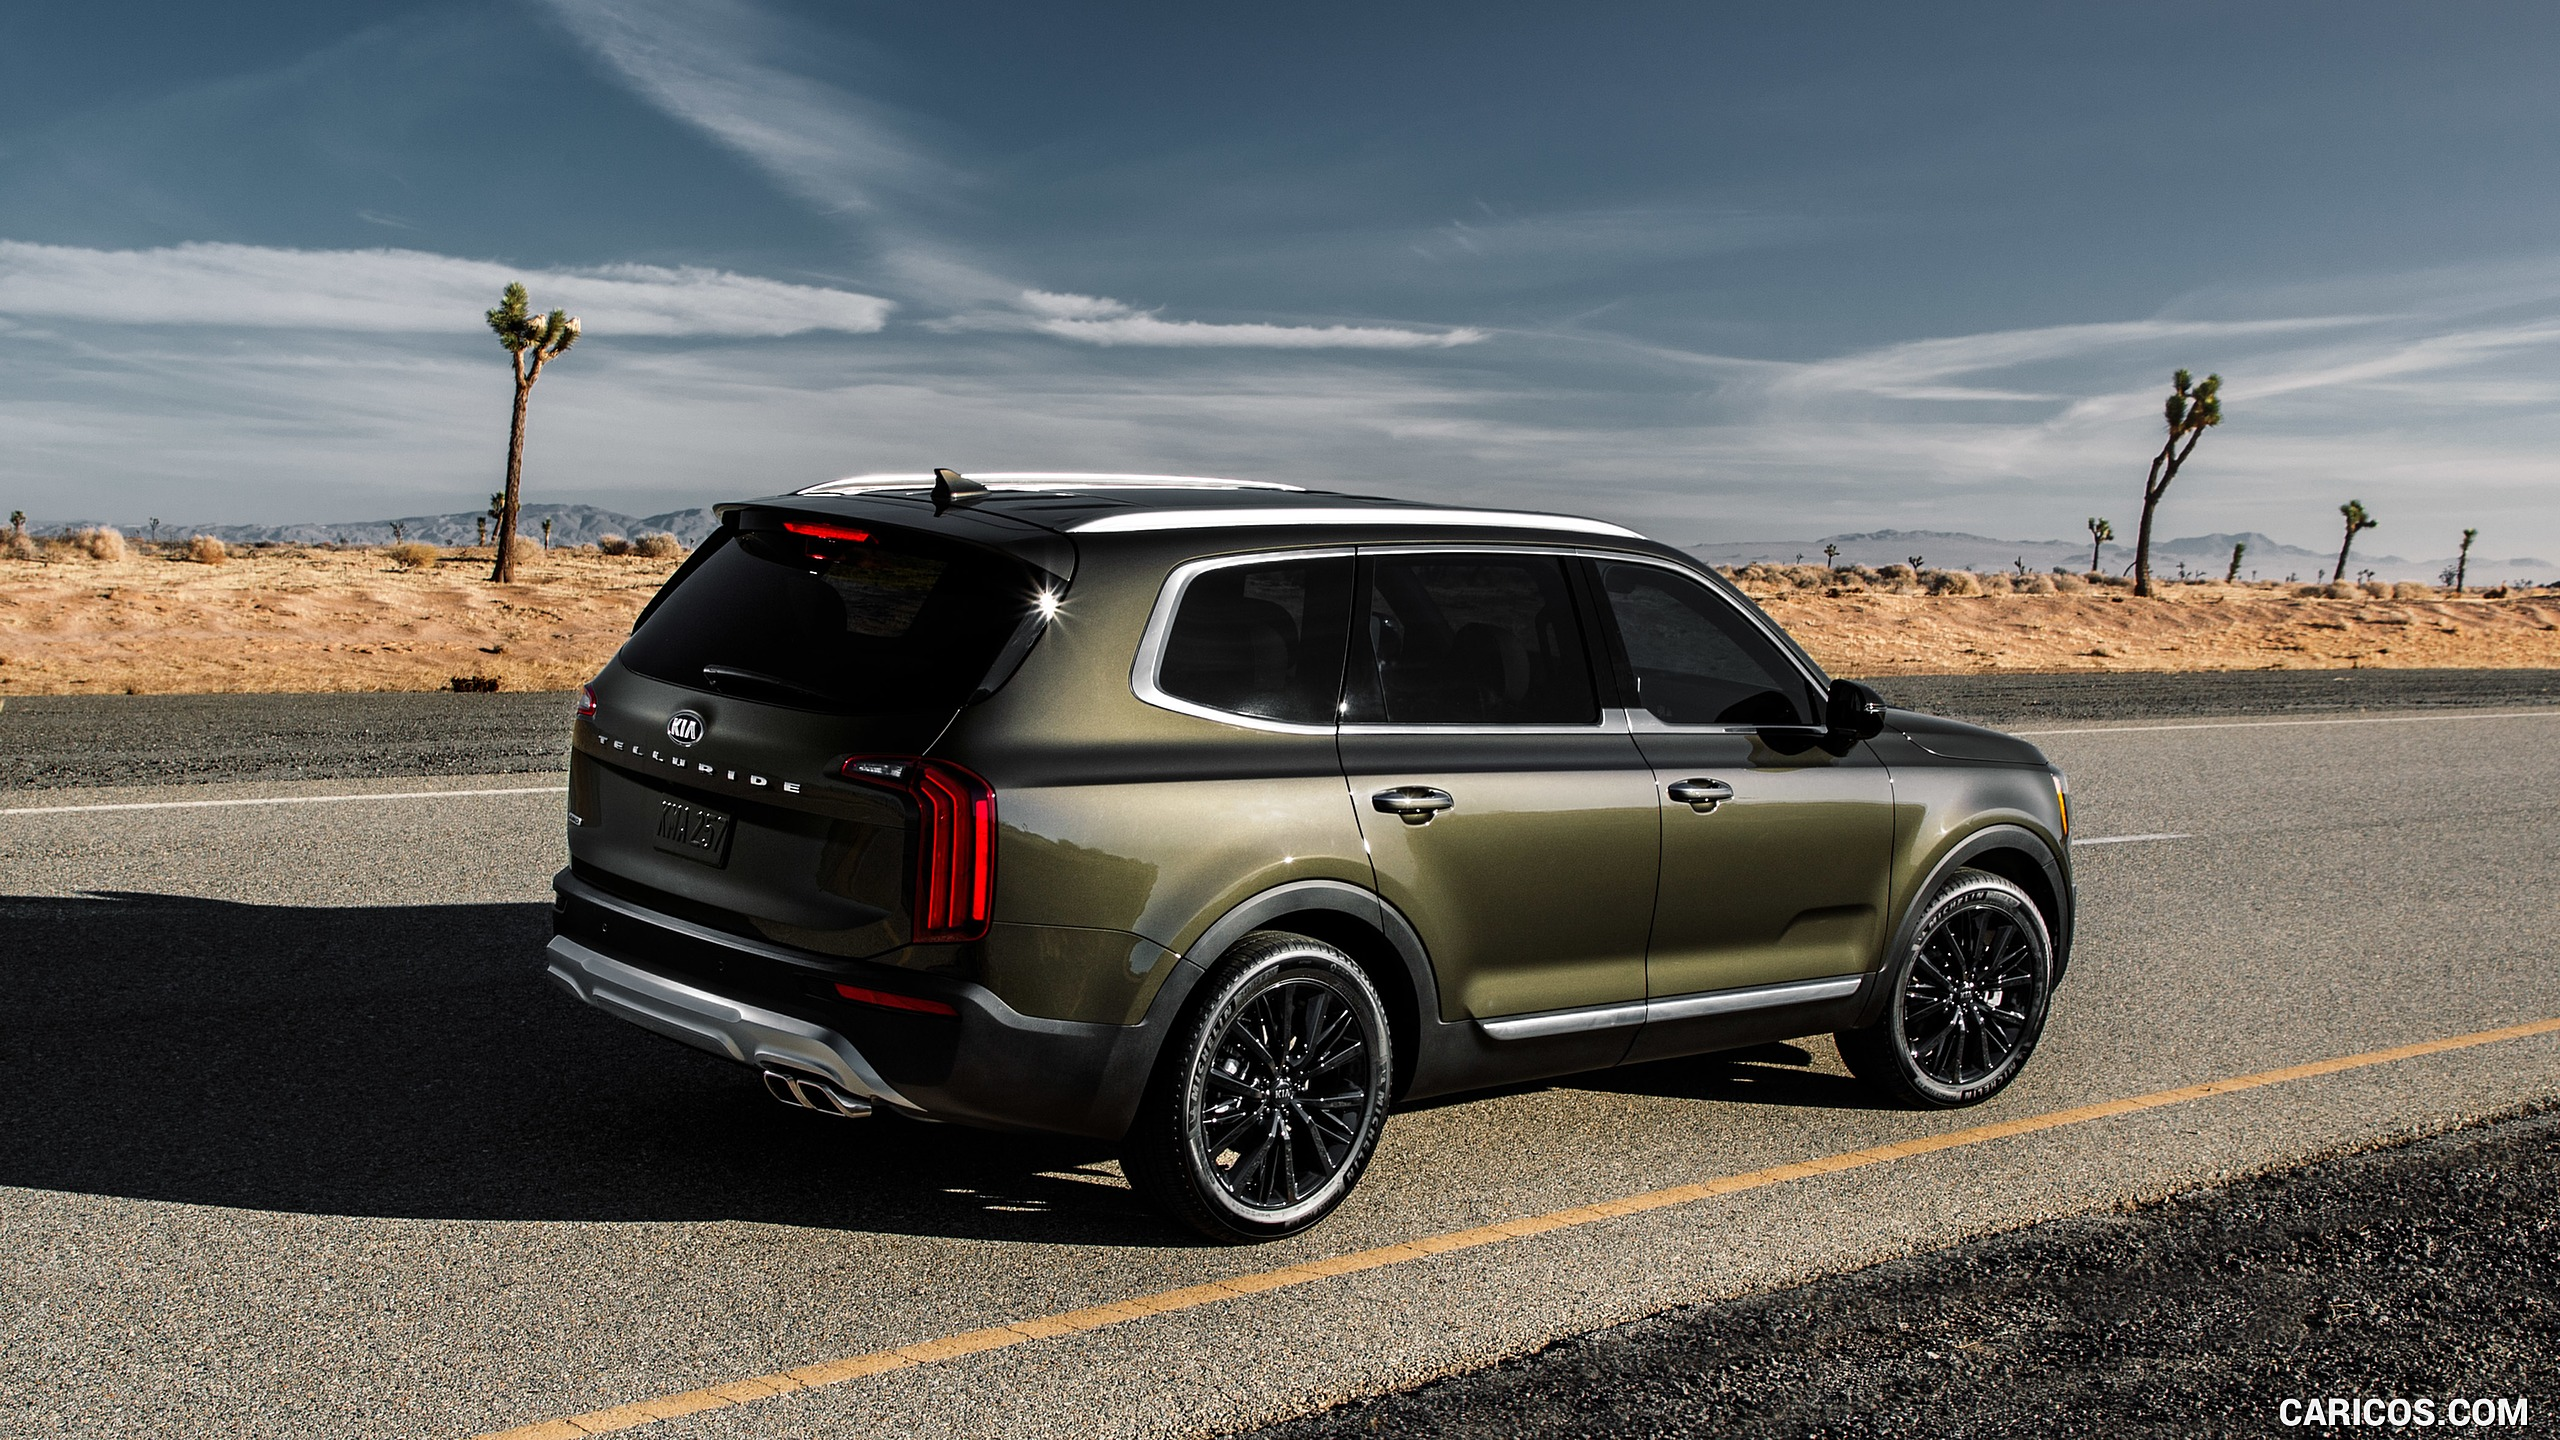 2020 Kia Telluride   Rear Three Quarter HD Wallpaper 3 2560x1440